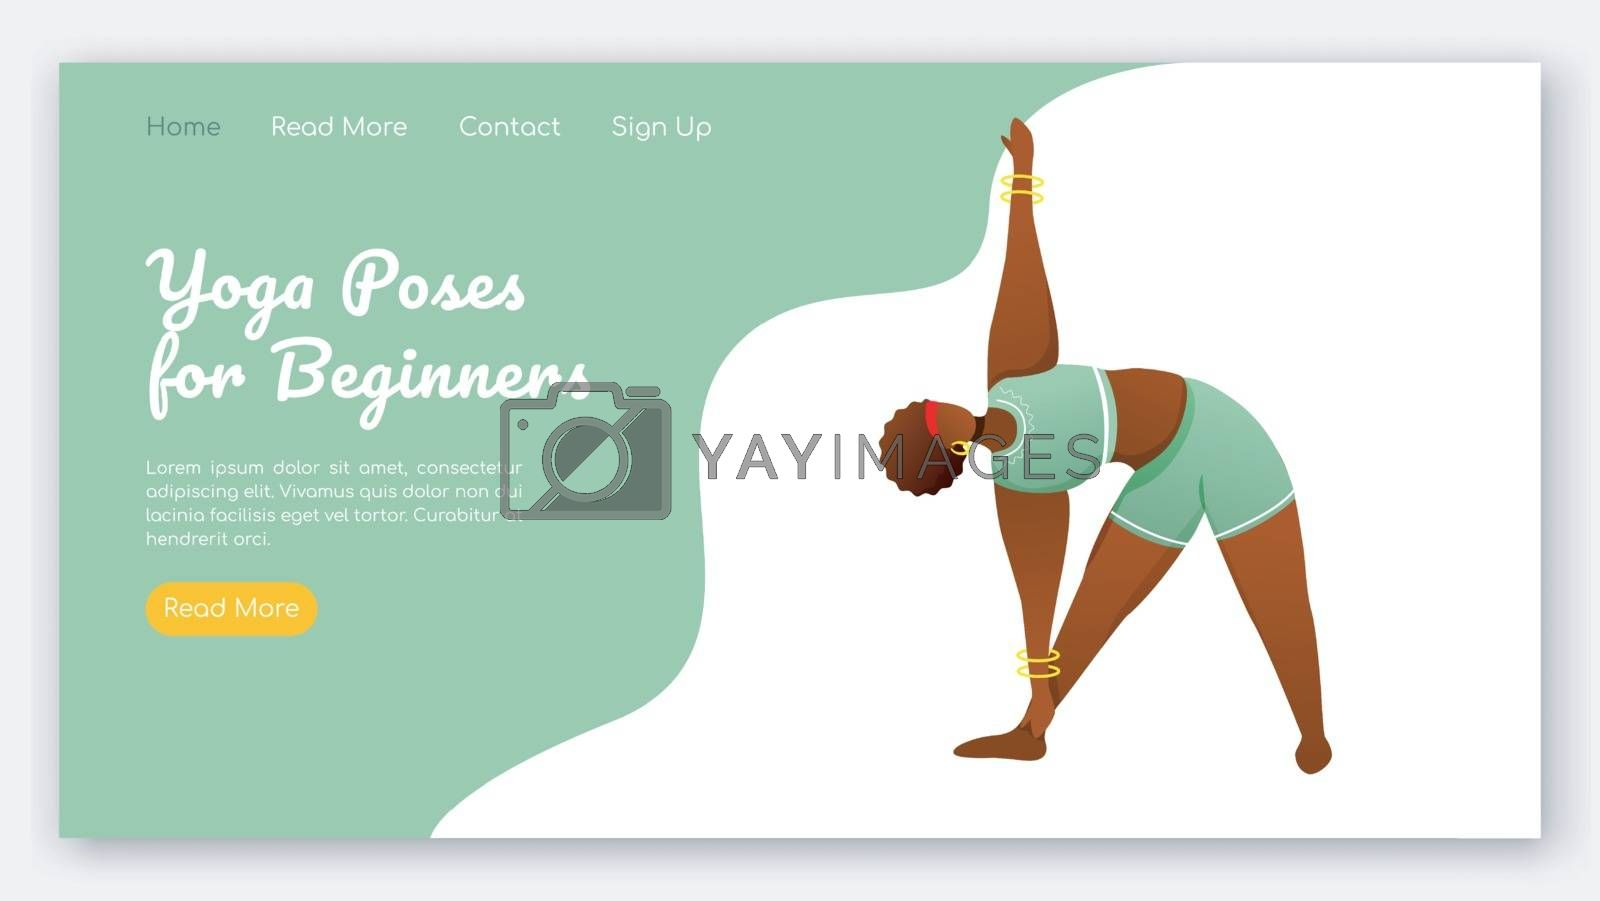 Yoga poses for beginners landing page vector template. Active and healthy lifestyle. Bodypositive website interface idea with flat illustrations. Homepage layout, web banner, webpage cartoon concept